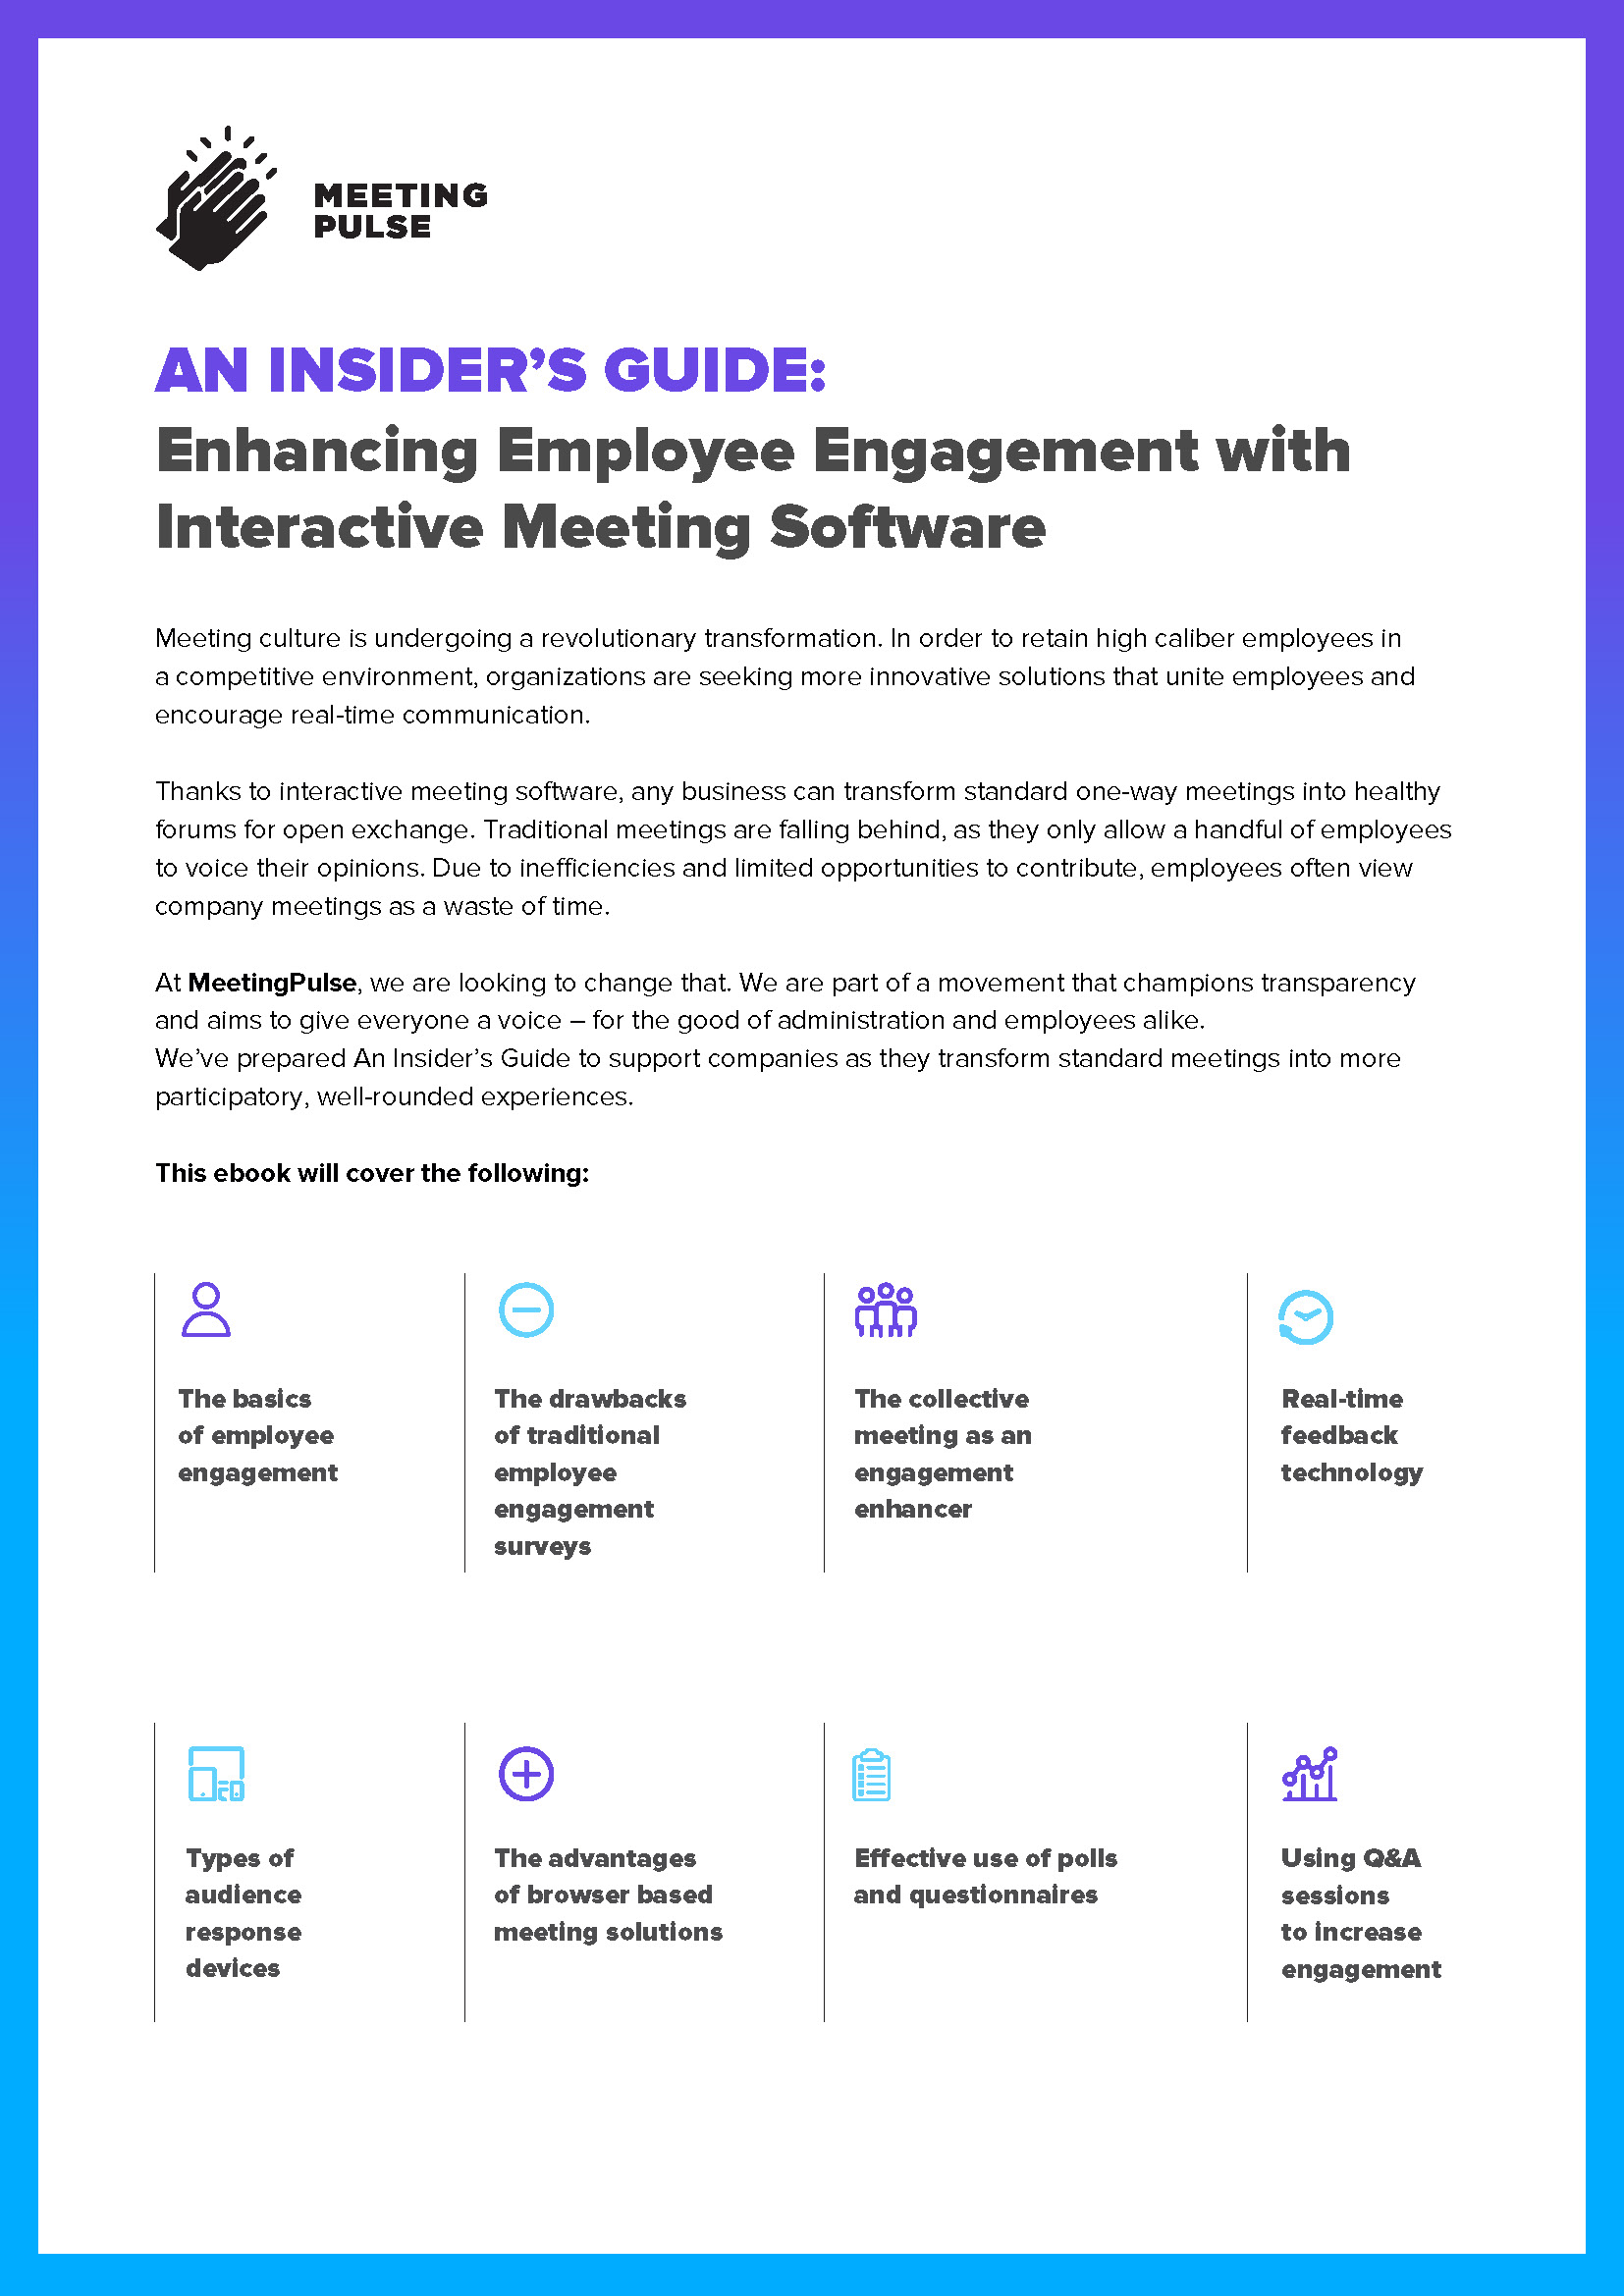 Enhancing Employee Engagement with Interactive Meeting Software_Page_01.jpg